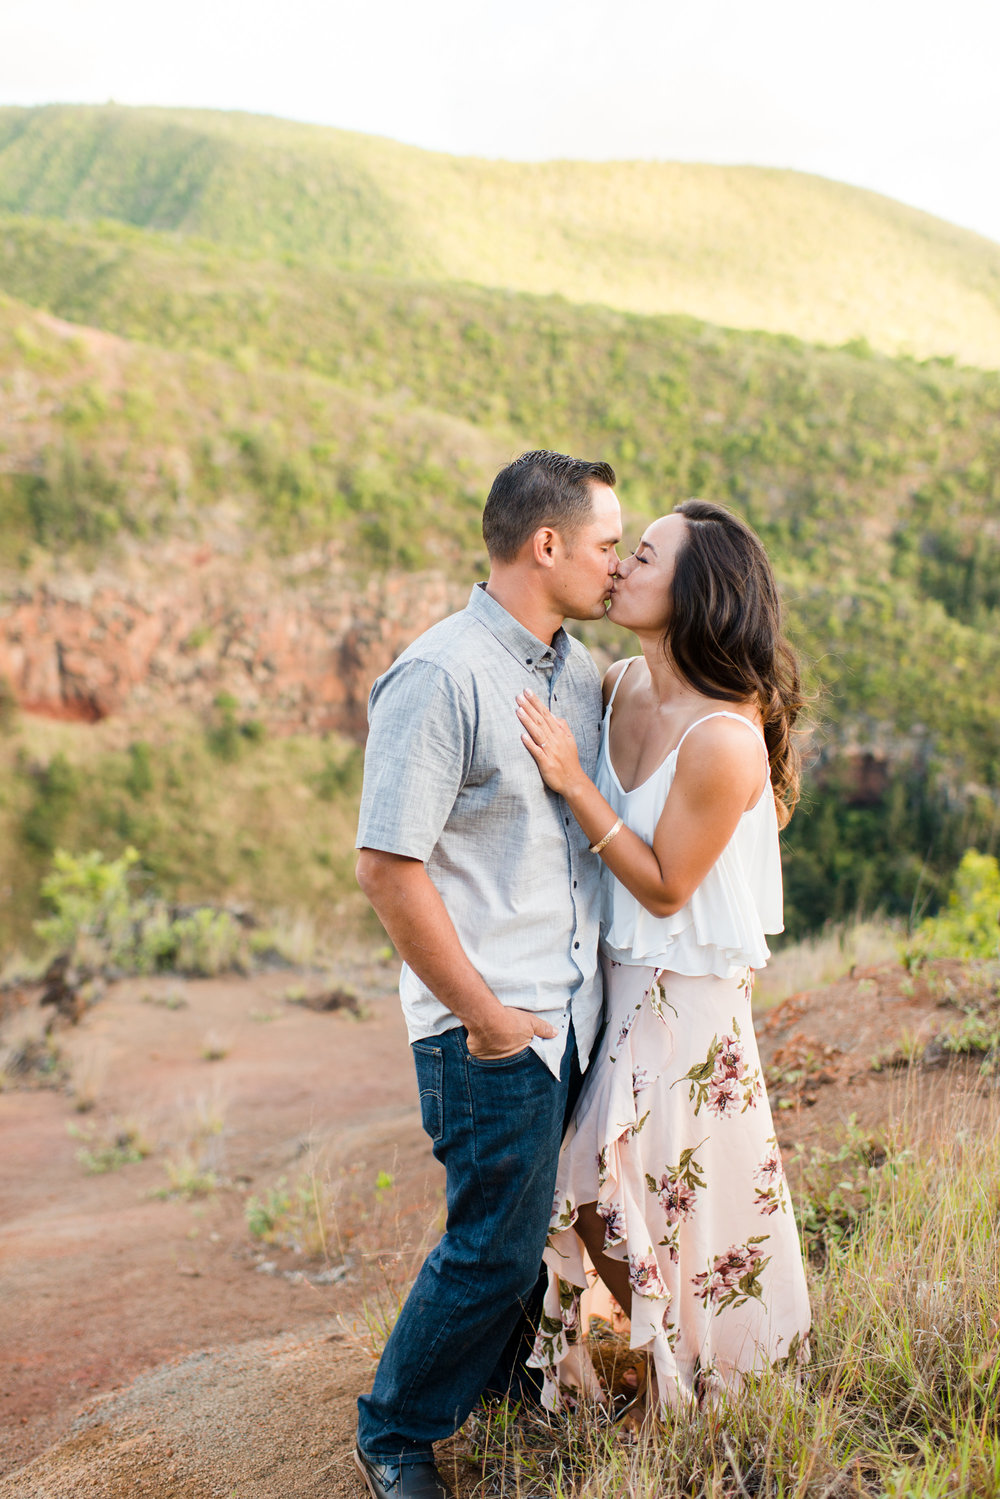 Maui Couples Photographer.  Maui Adventure Photography.  Candid Engagement Photography.